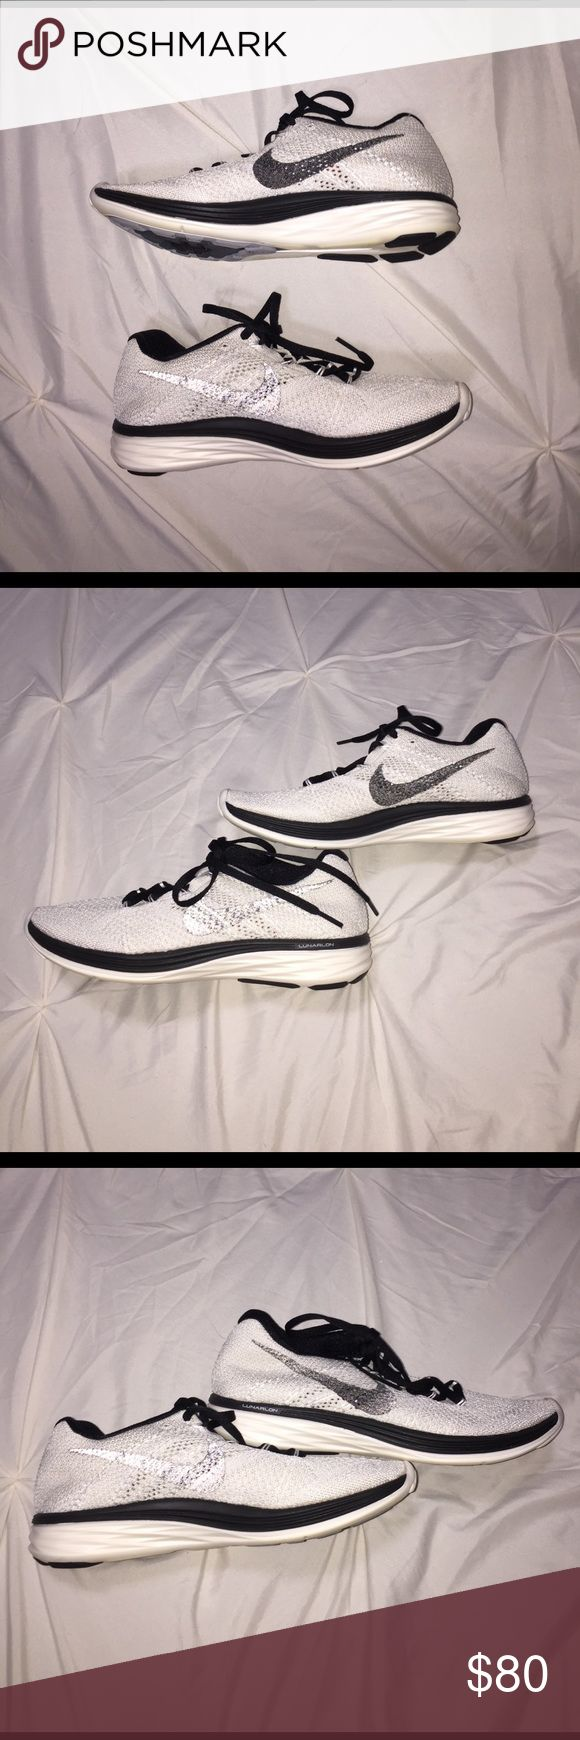 Black and white Nike Flyknit Lunar 3 Black and white Nike Flyknit Lunar 3, not new but in amazing condition. Nike Shoes Athletic Shoes